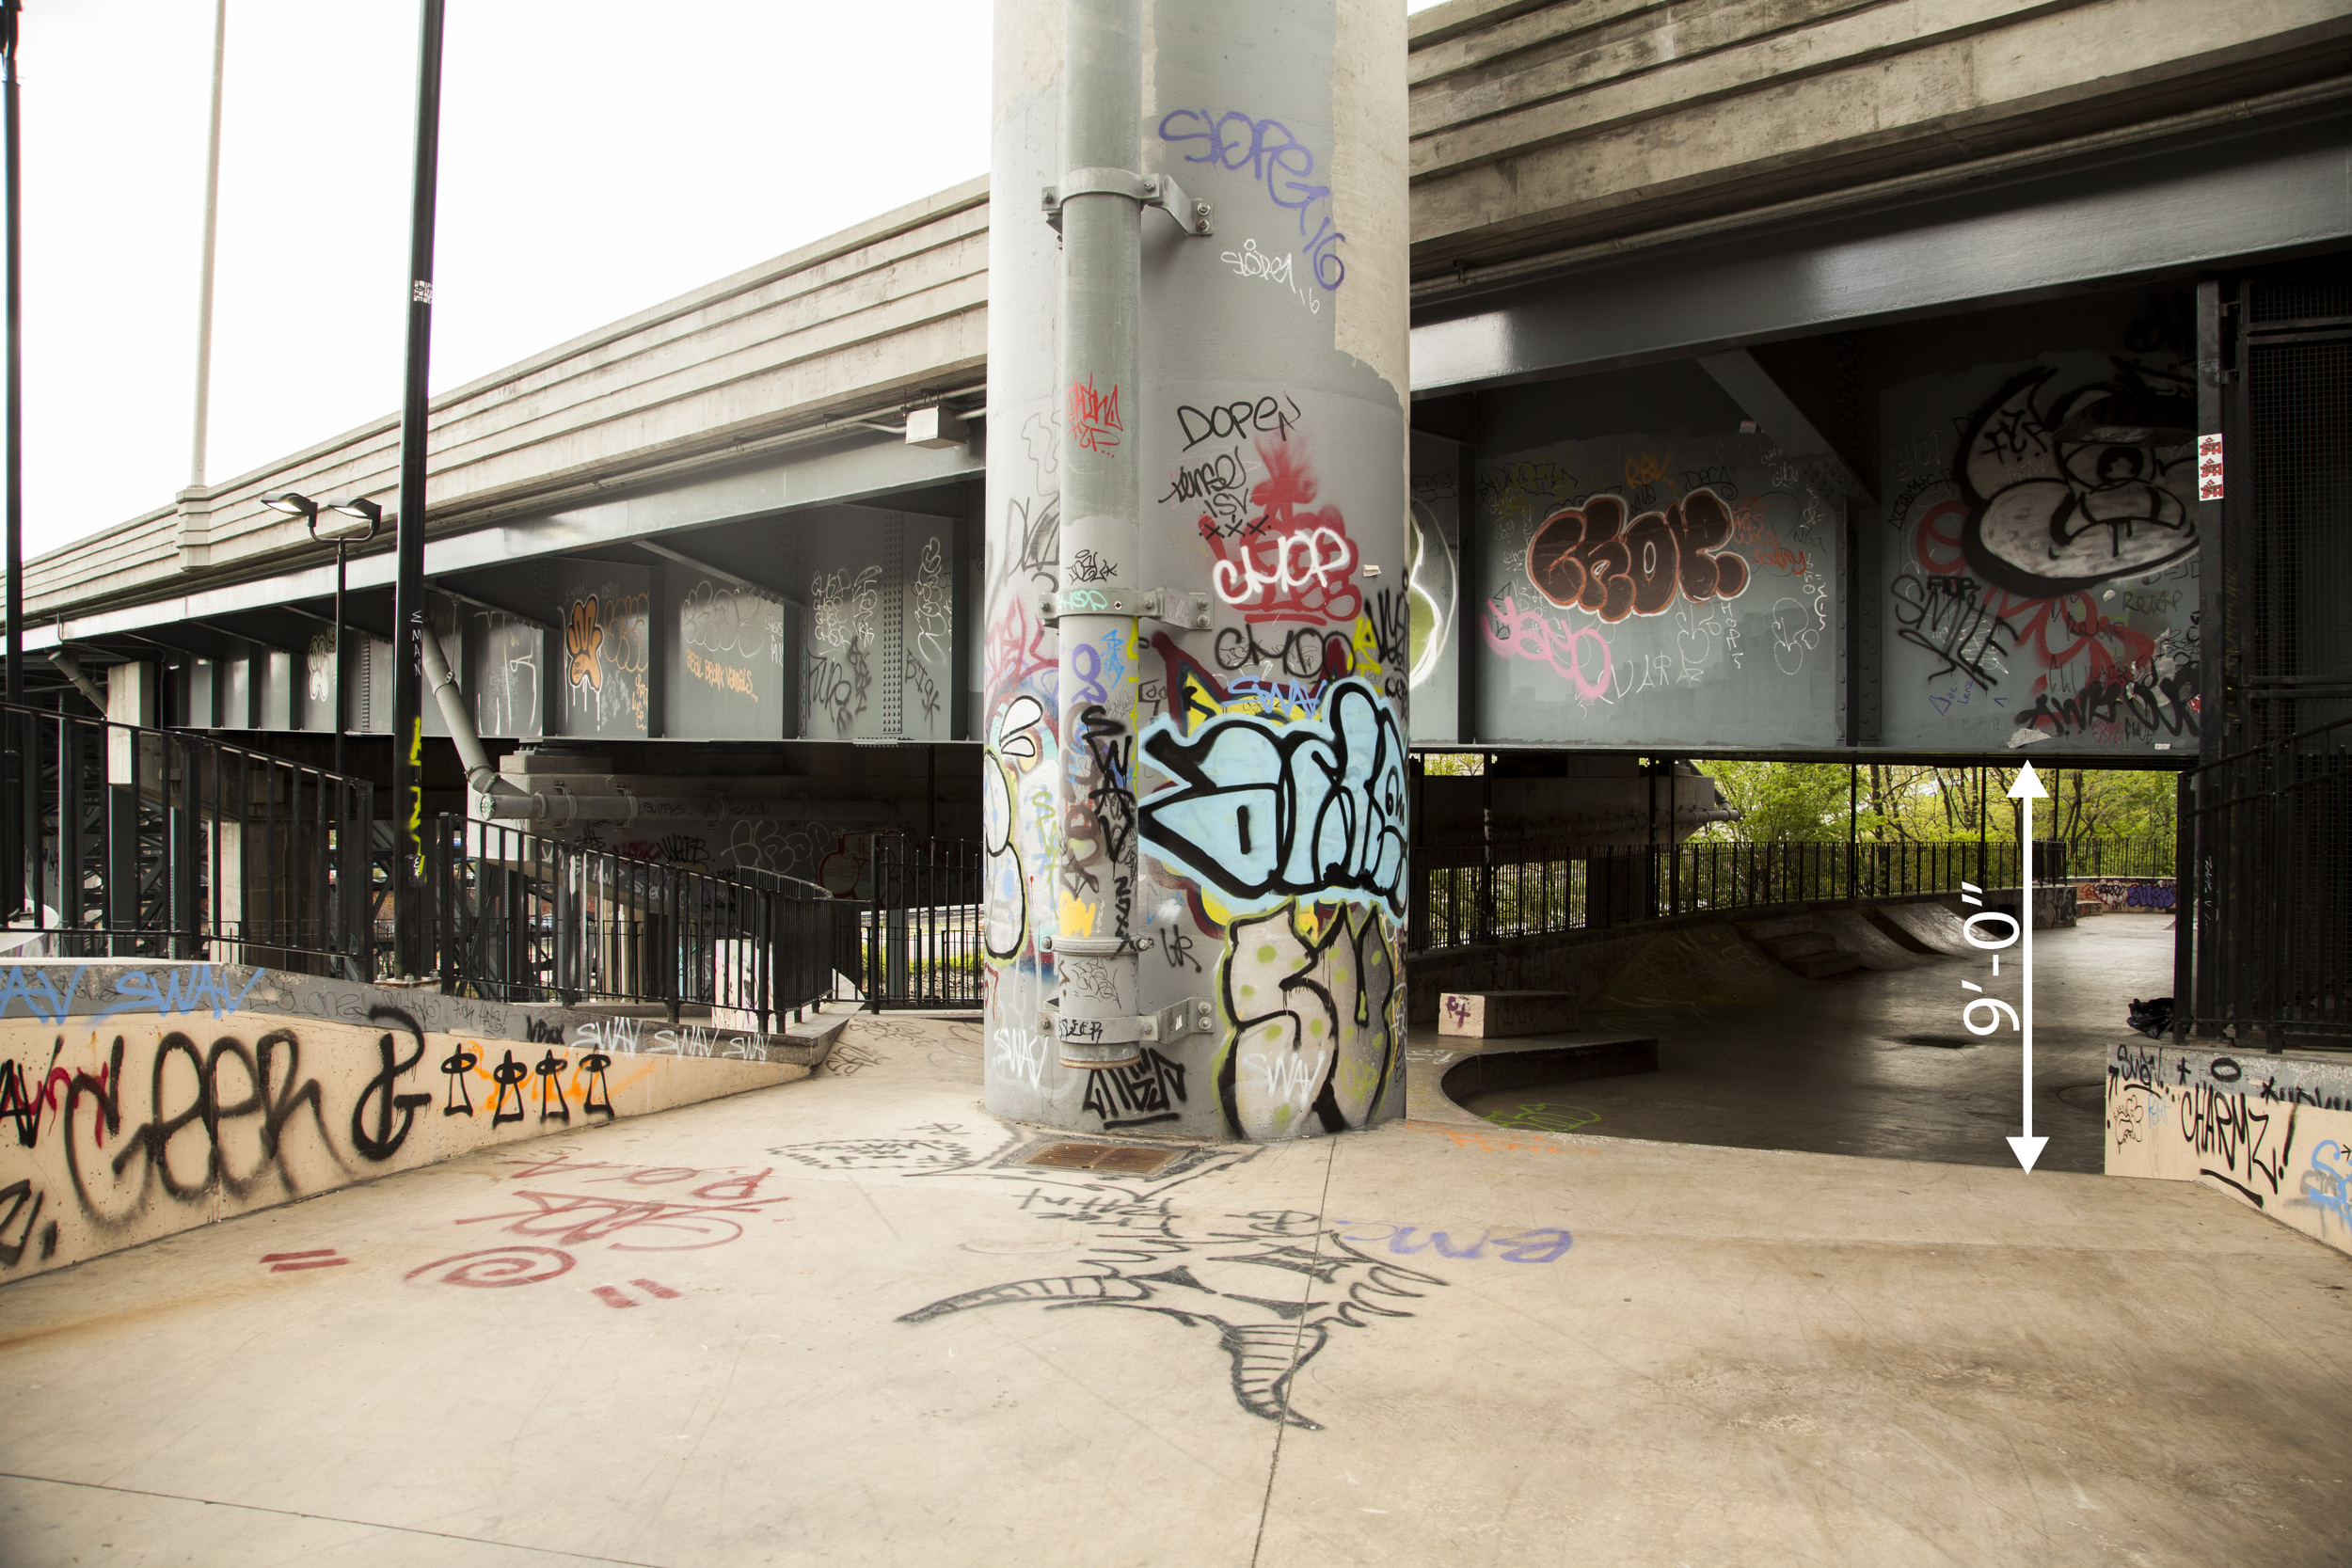 """Highway underpass leading to the remaining portion of the skatepark. The overall head height of this space is 9'-0"""" at the lowest point. While the park continuously slopes downward toward the river, the clearance beneath the highway underpass doesn't go beyond 12'-0."""" While the proximity to the highway and its constant noise and vibrations would be problematic for a building, the skate park, which is generally loud and messy in nature, thrives in these conditions. It has become a blank canvas for art and exploration of skating, rollerblading, and biking."""